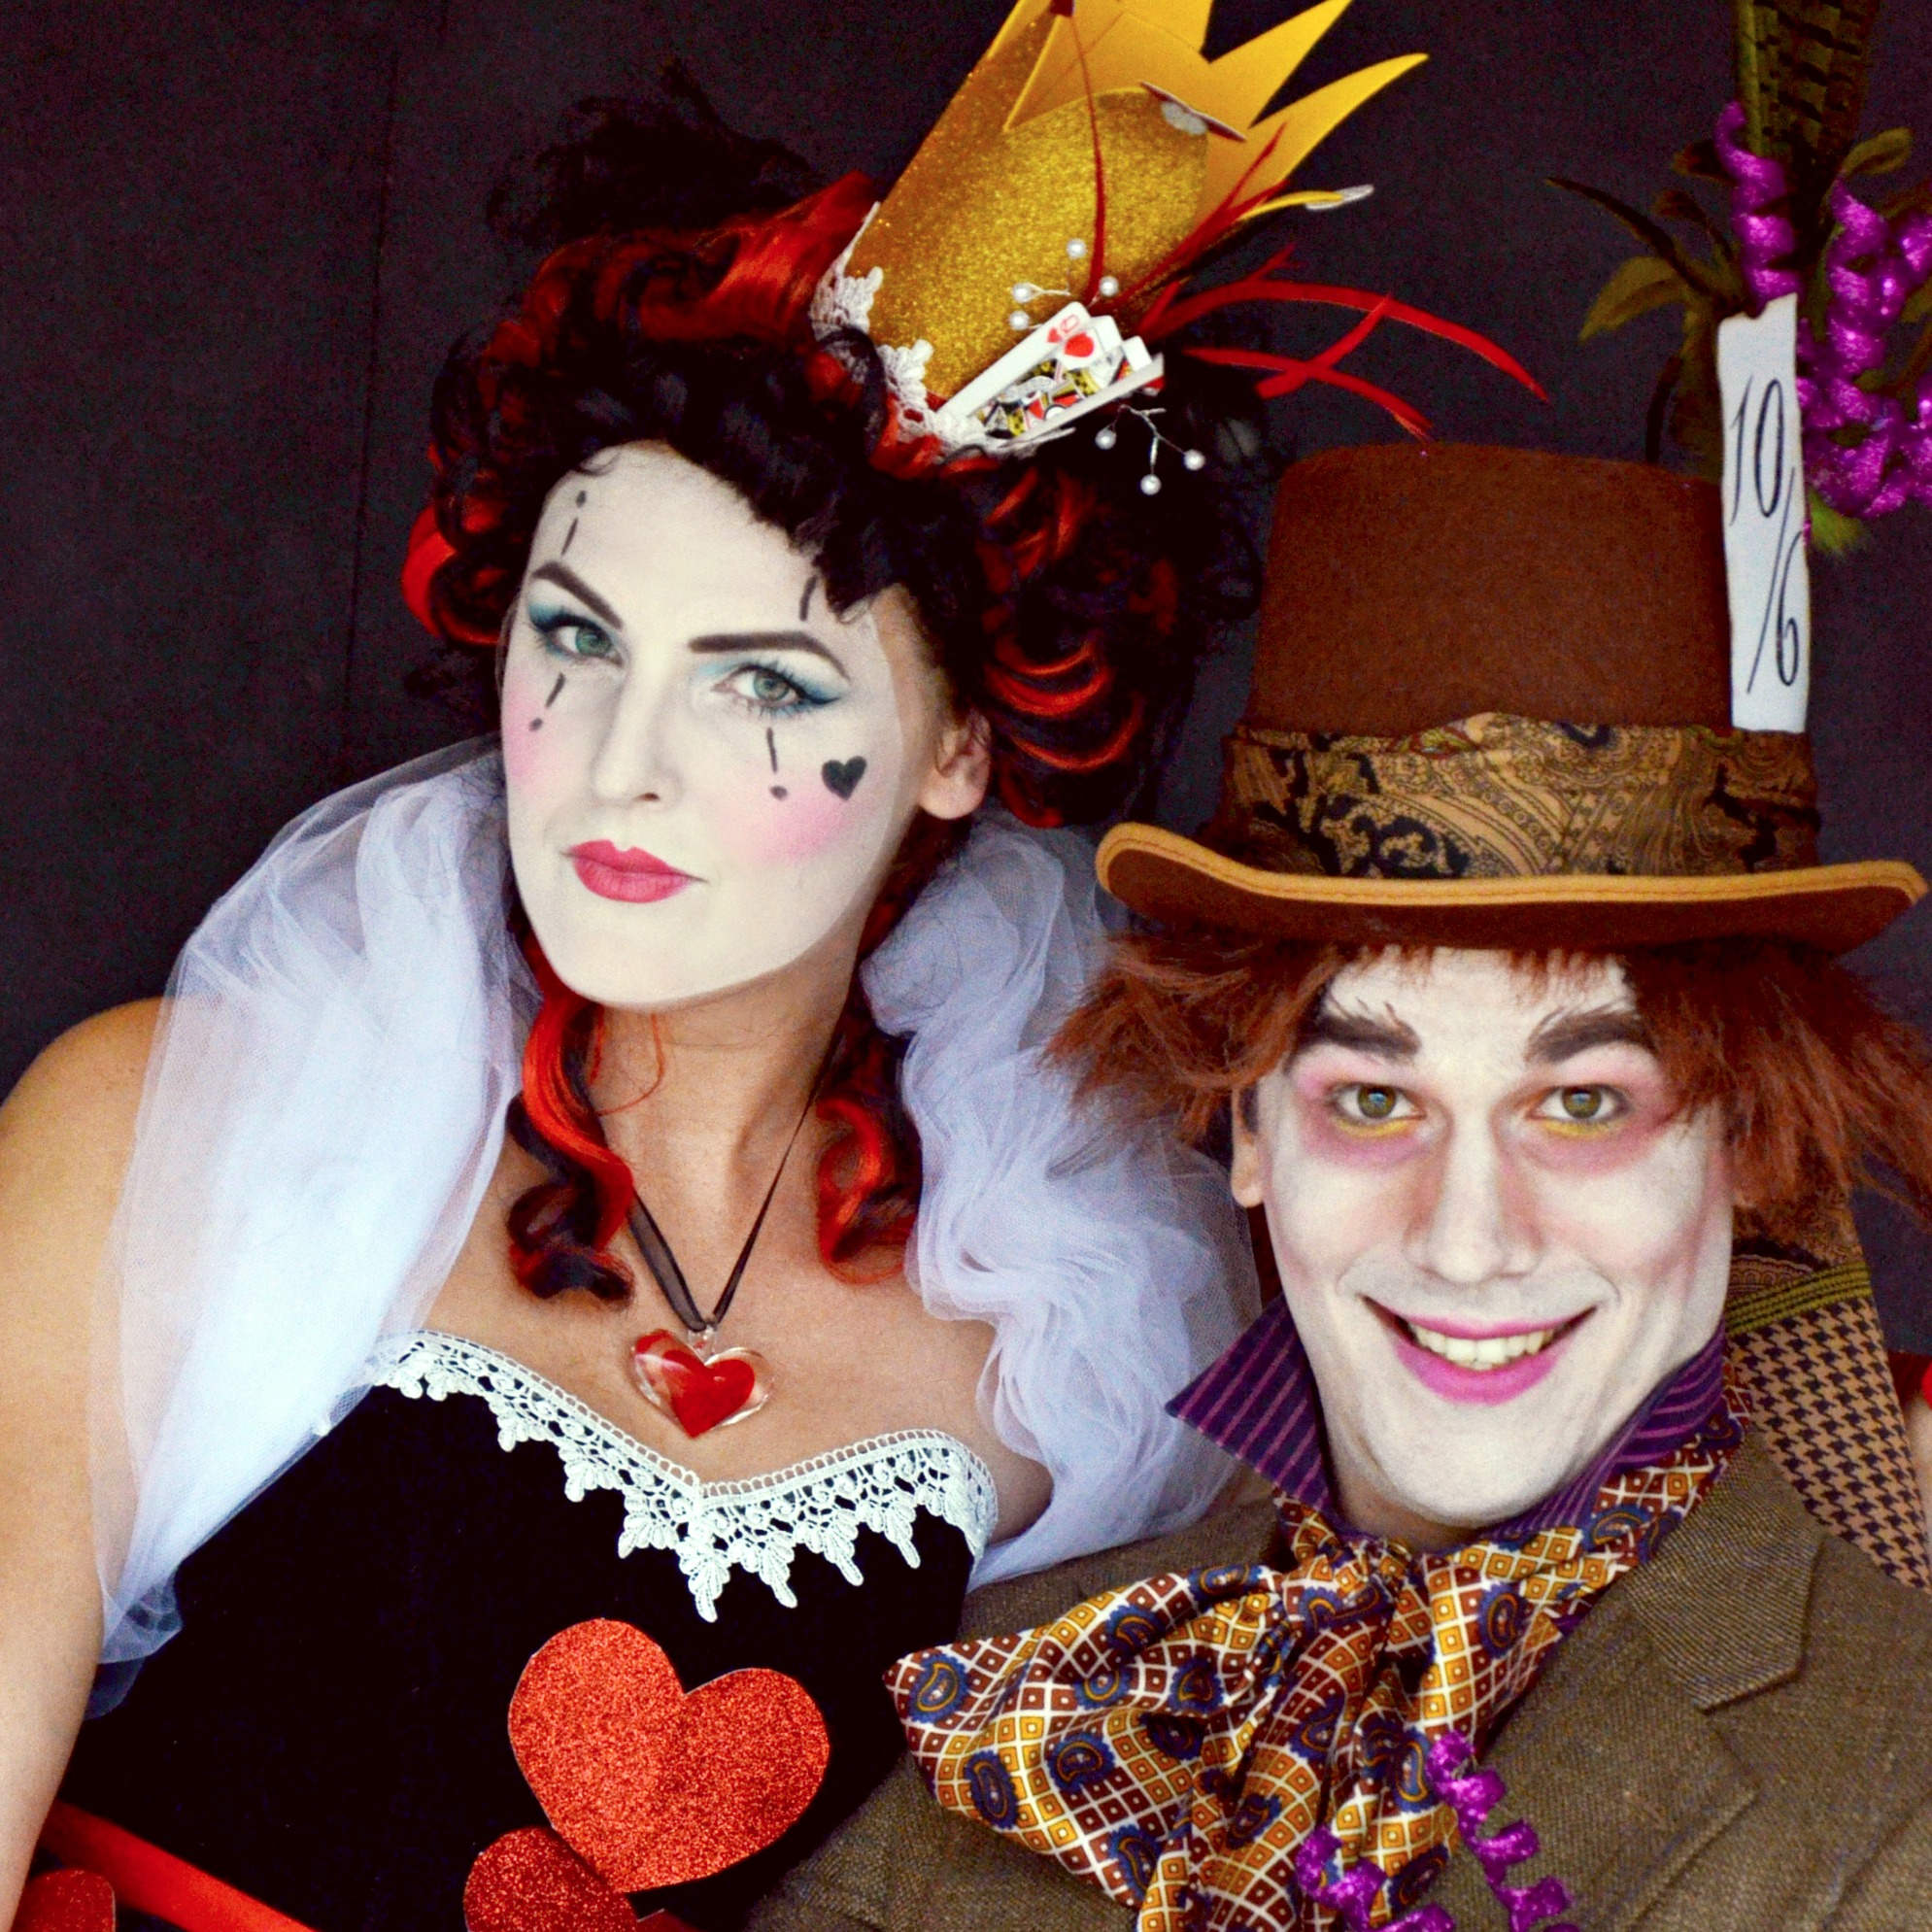 sc 1 st  see|cate|create & Mad Hatter and Queen of Hearts|Couples Halloween Costume Ideas